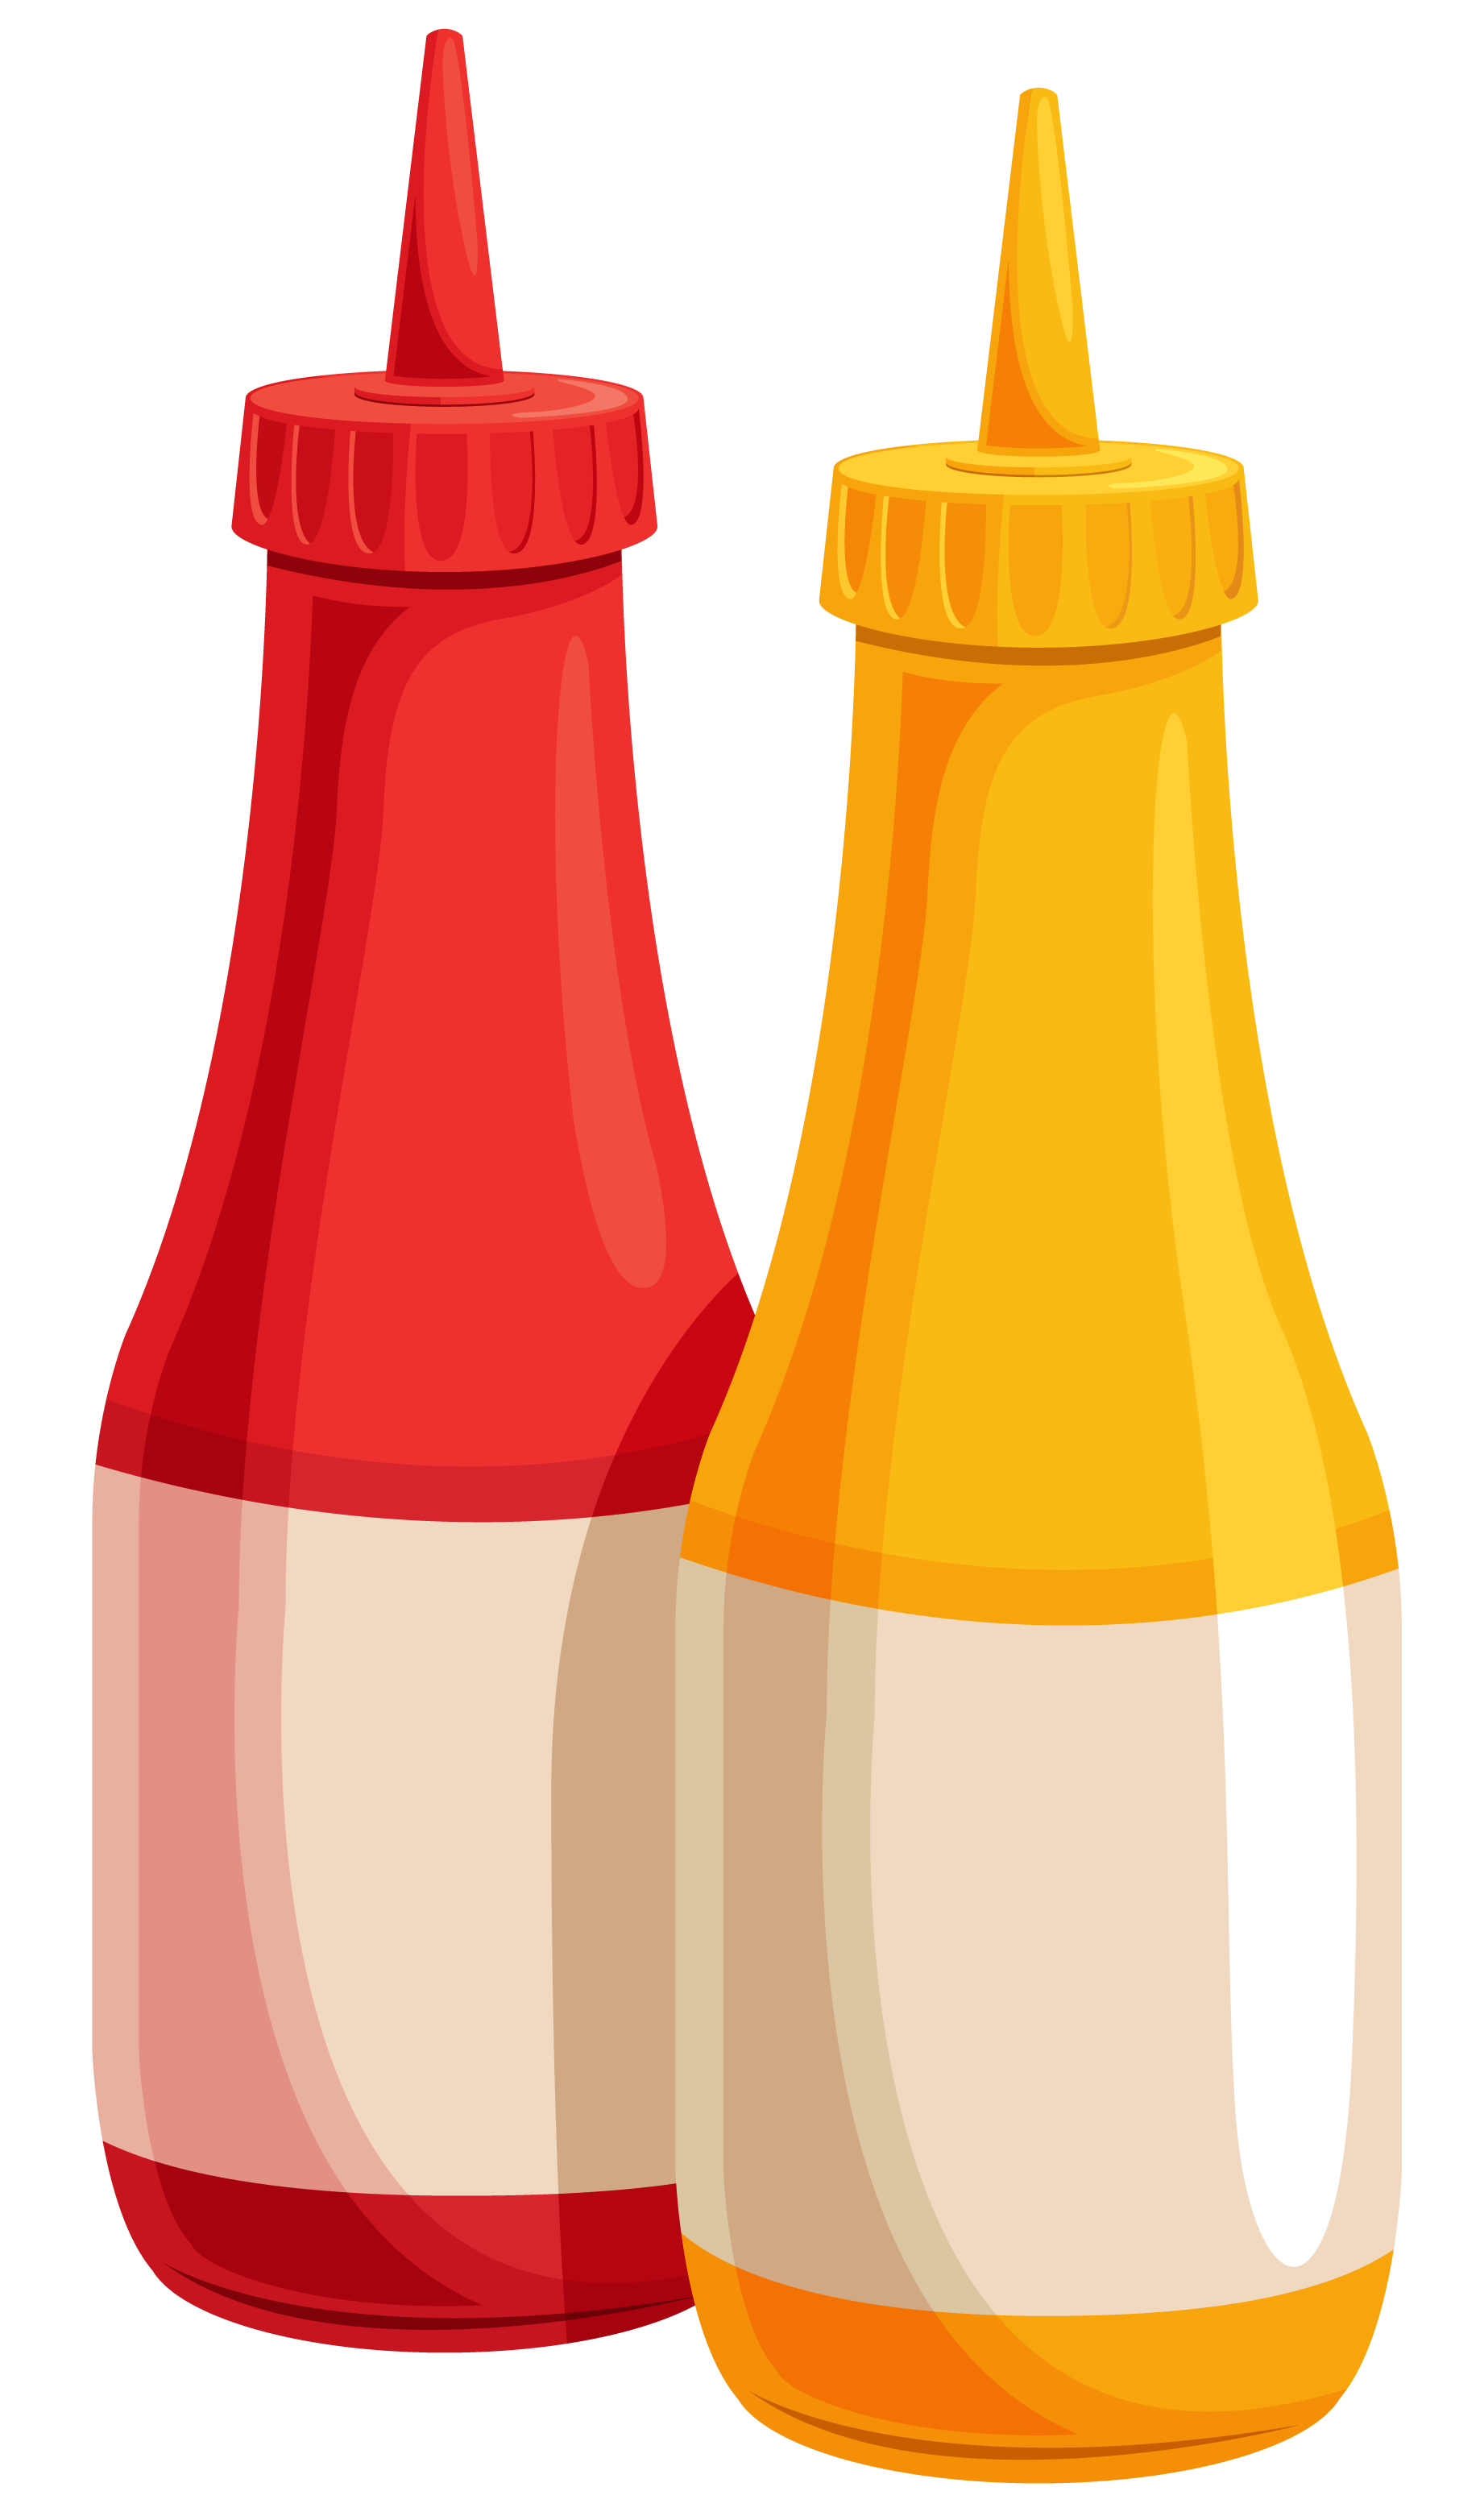 Ketchup And Mustard PNG Transparent Ketchup And Mustard ...